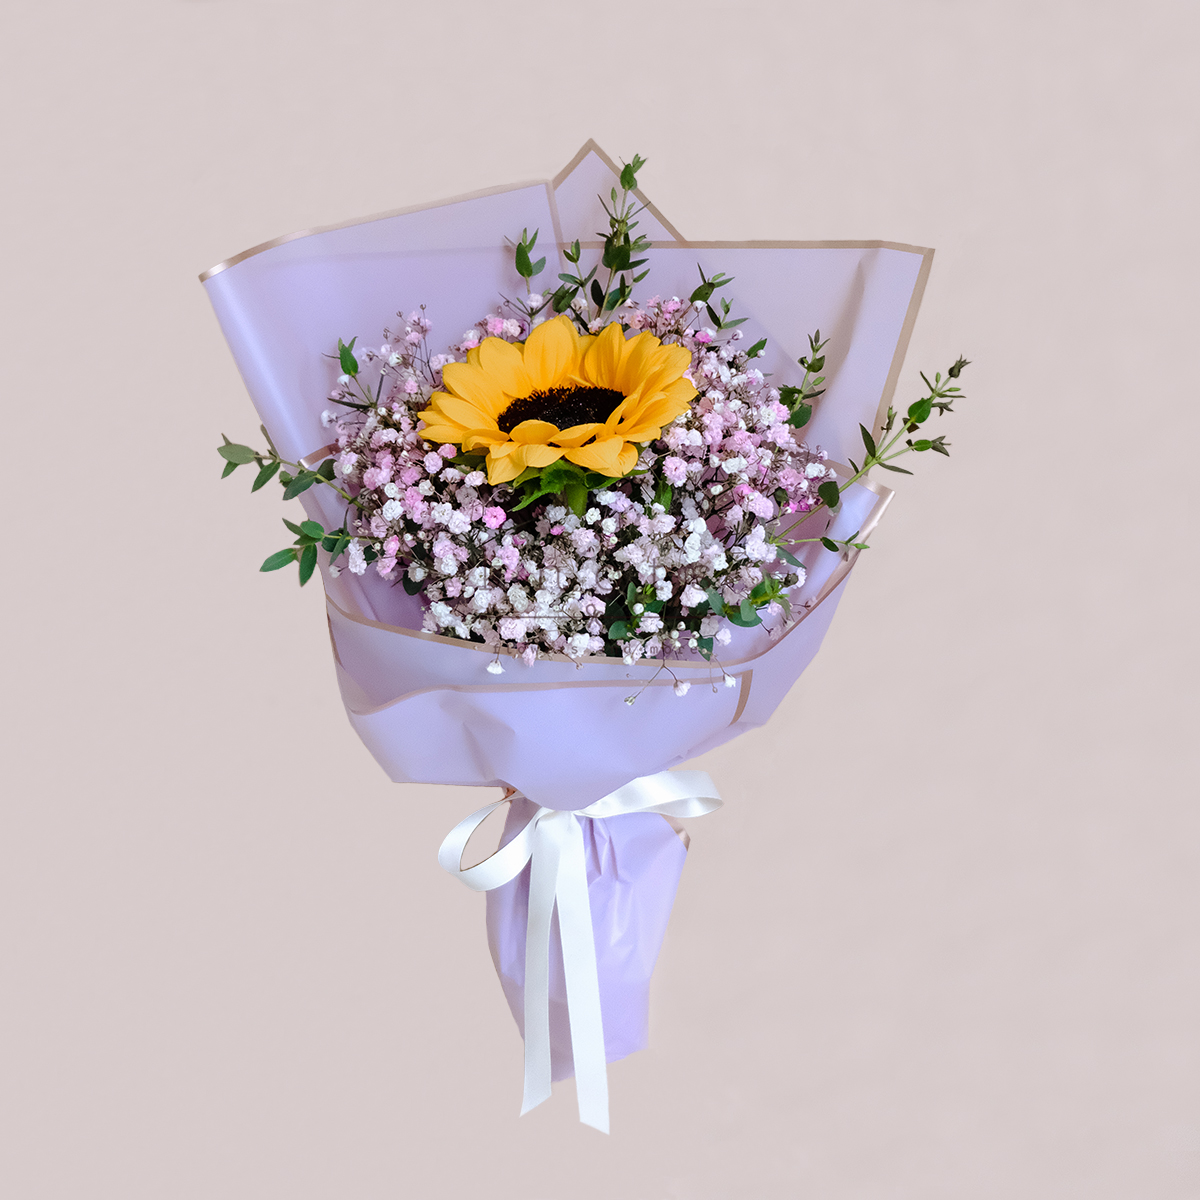 You're Smile (Sunflower Bouquet)